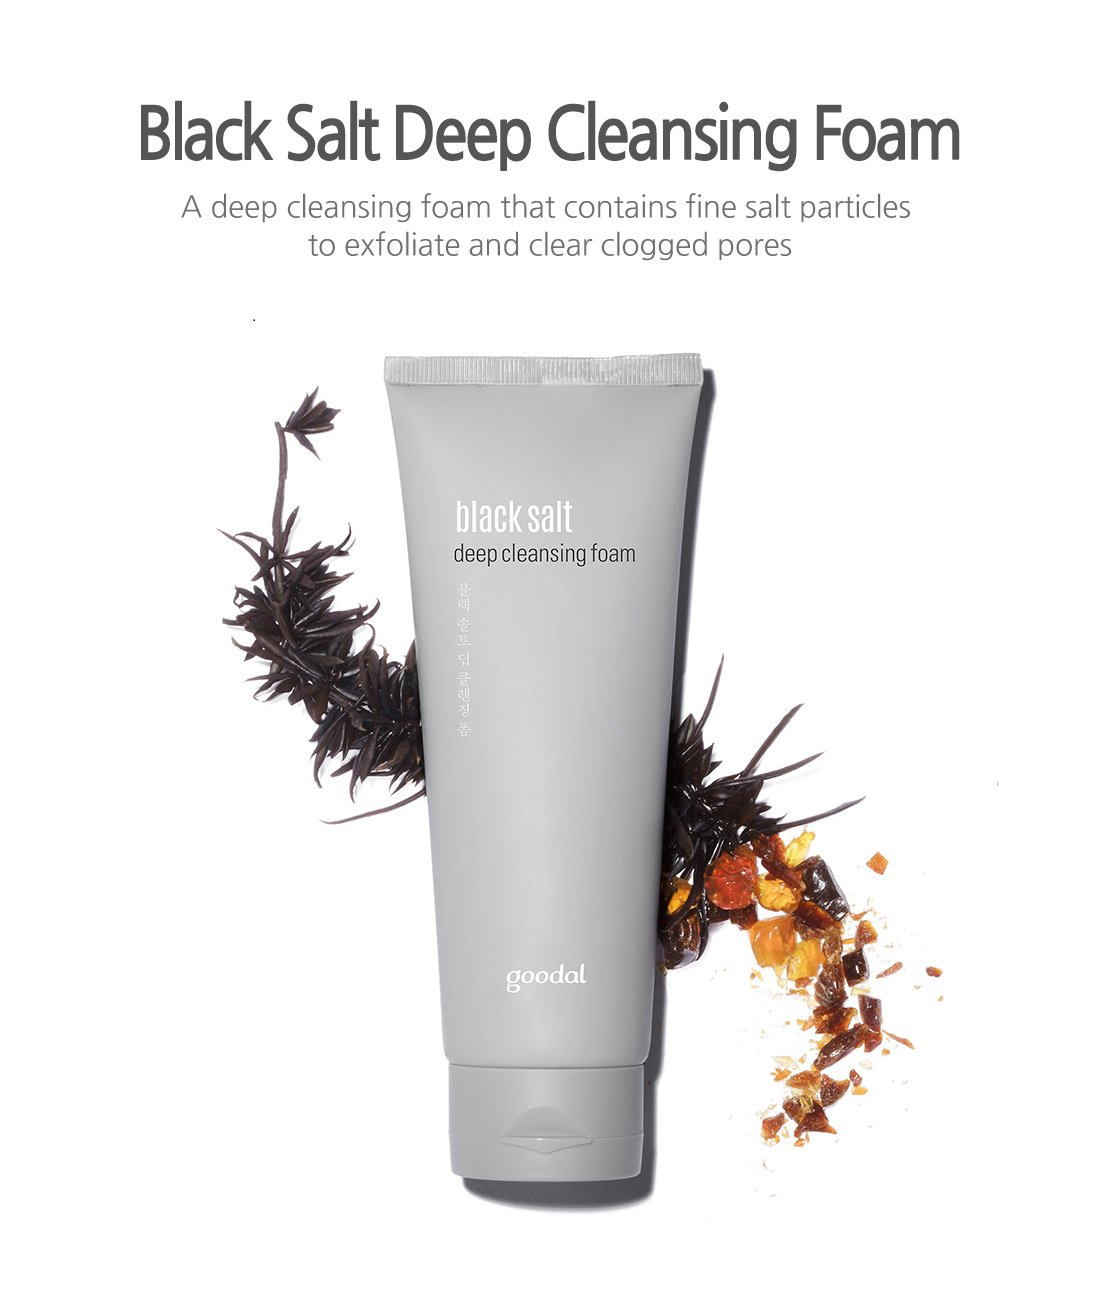 [REVIEW] Sữa Rửa Mặt Goodal Black Salt Deep Cleansing Foam